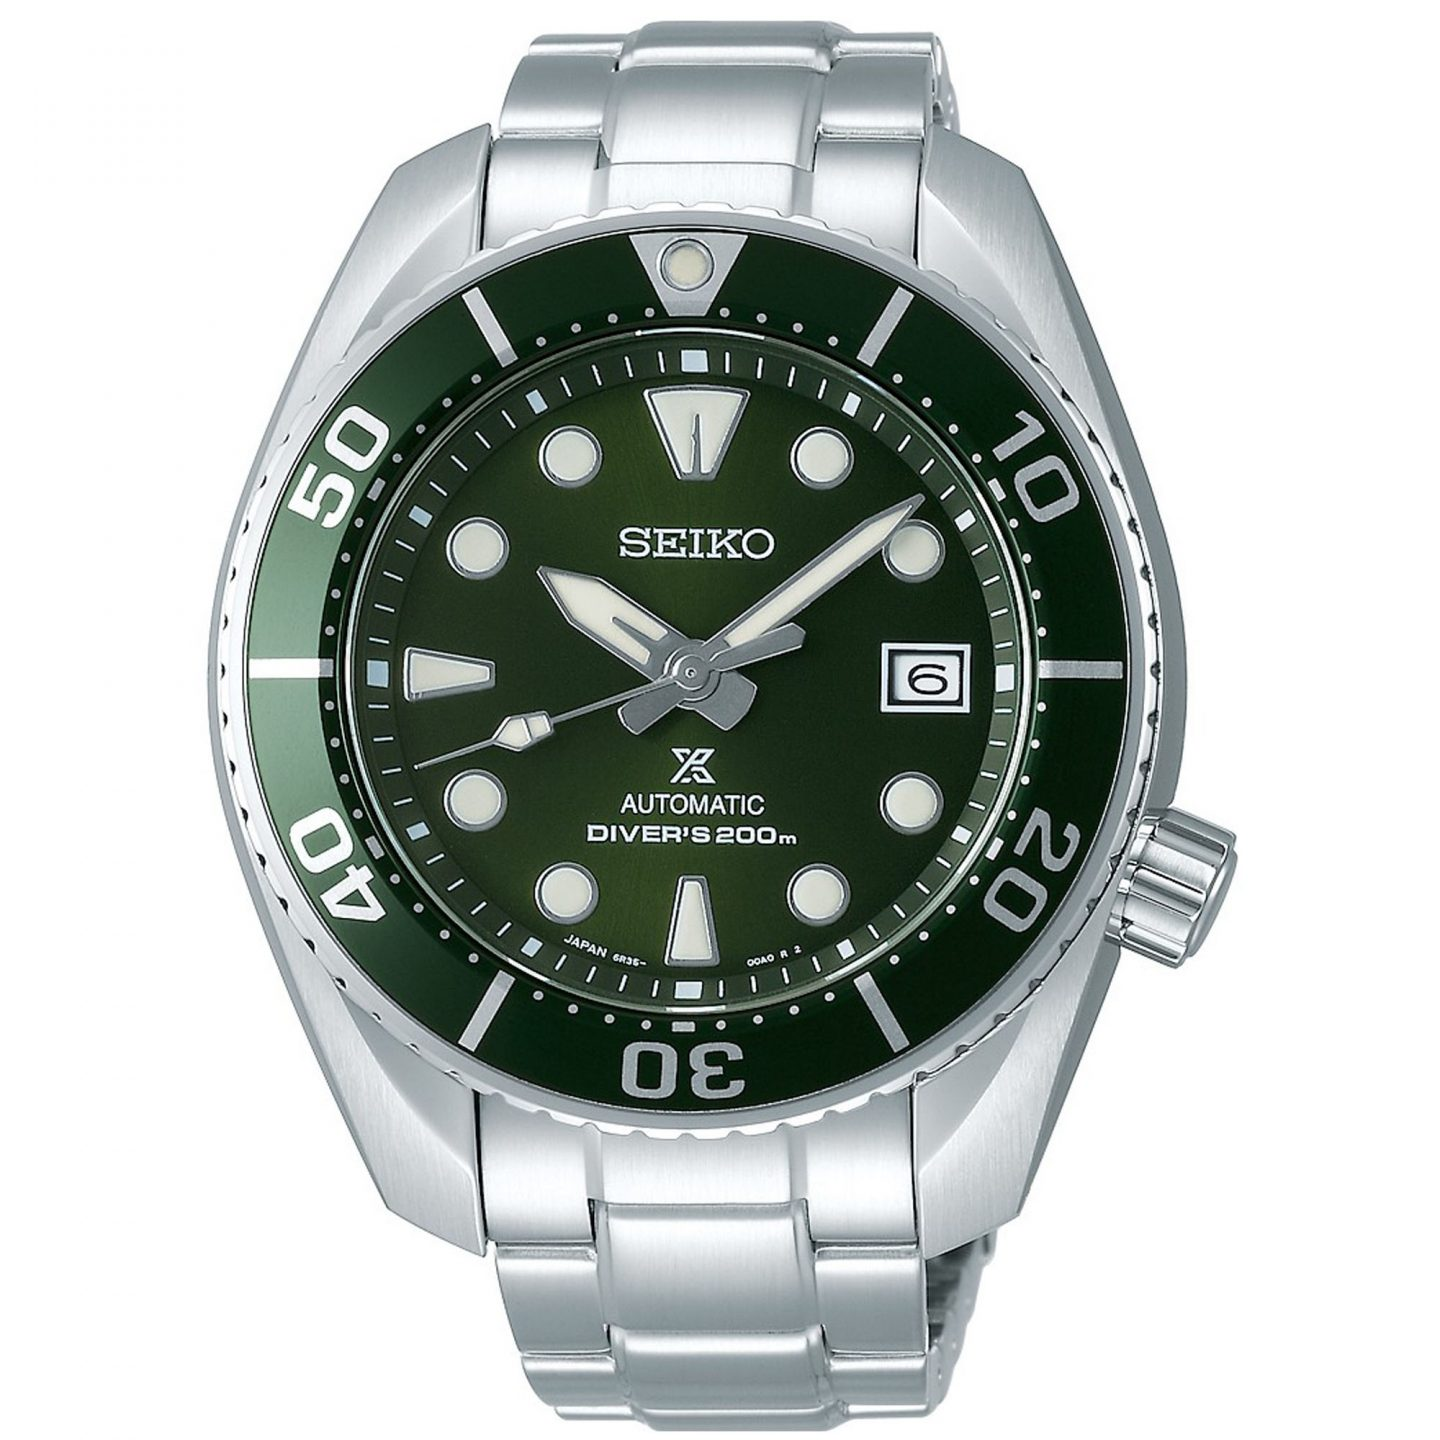 Seiko Prospex Automatic 'Sumo' 'The Hulk' Green Dial Silver Stainless Steel Diver's Men's Watch SPB103J1 RRP £740